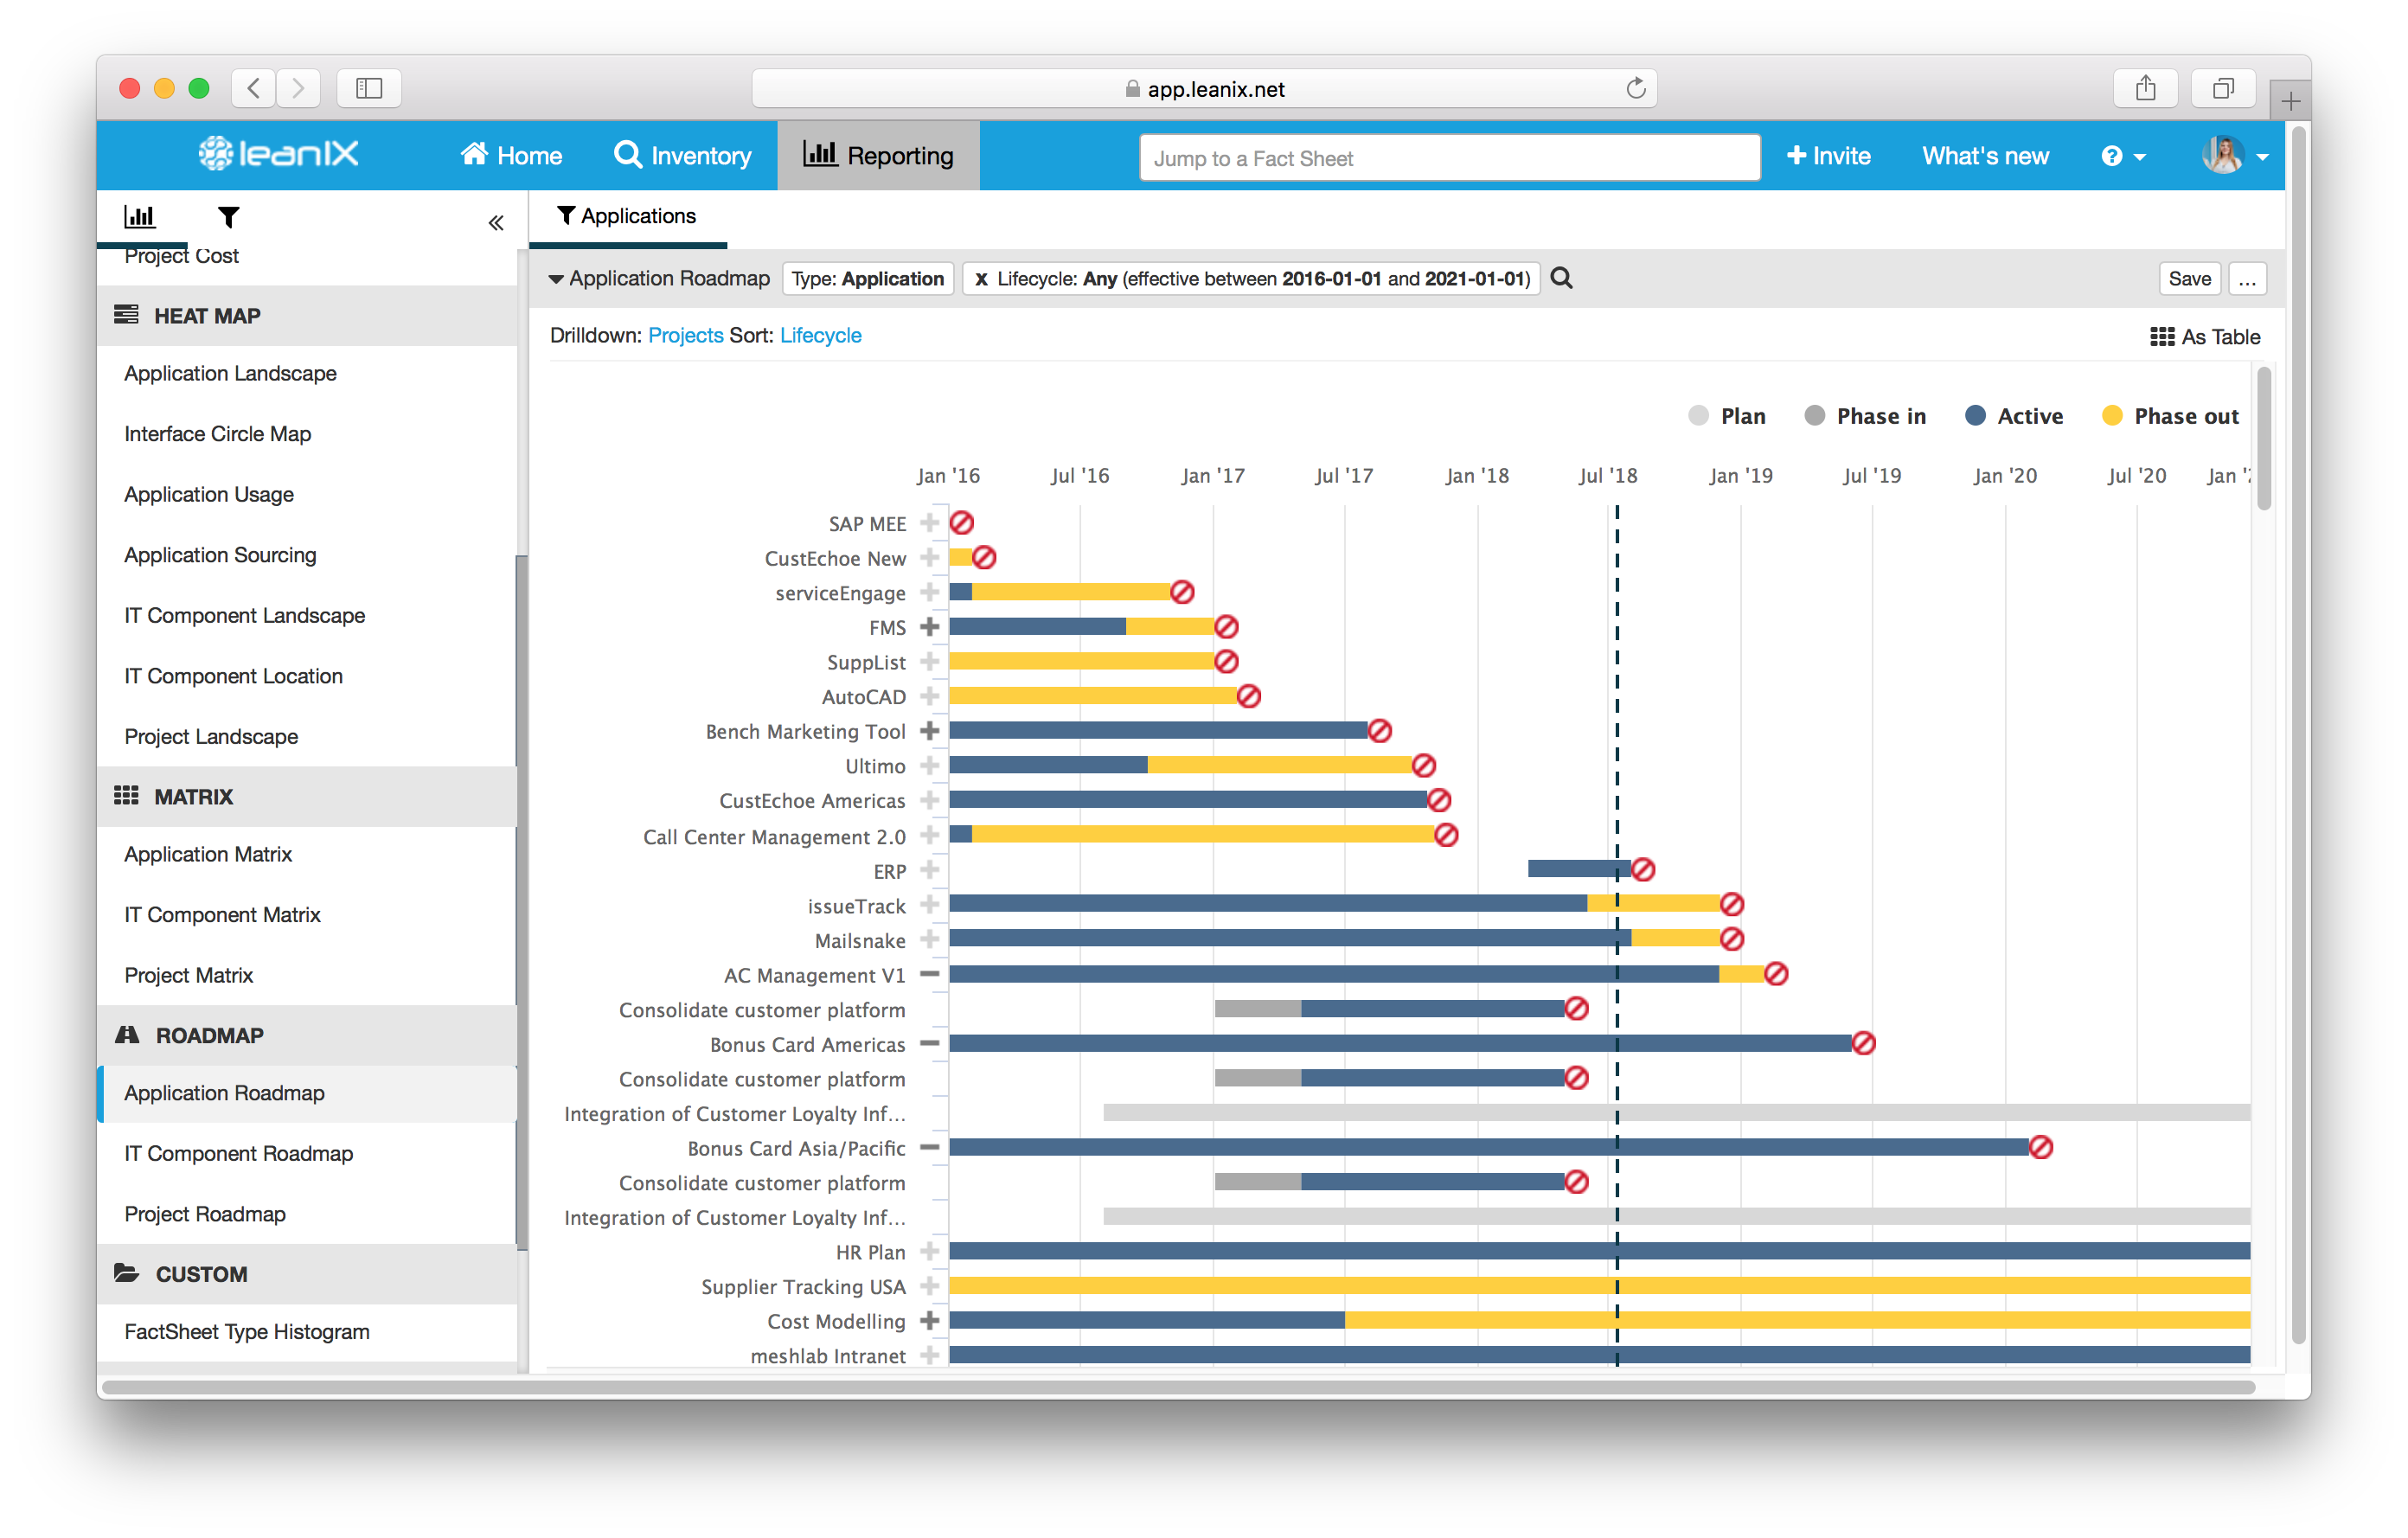 Application portfolio roadmap showing projects related to applications